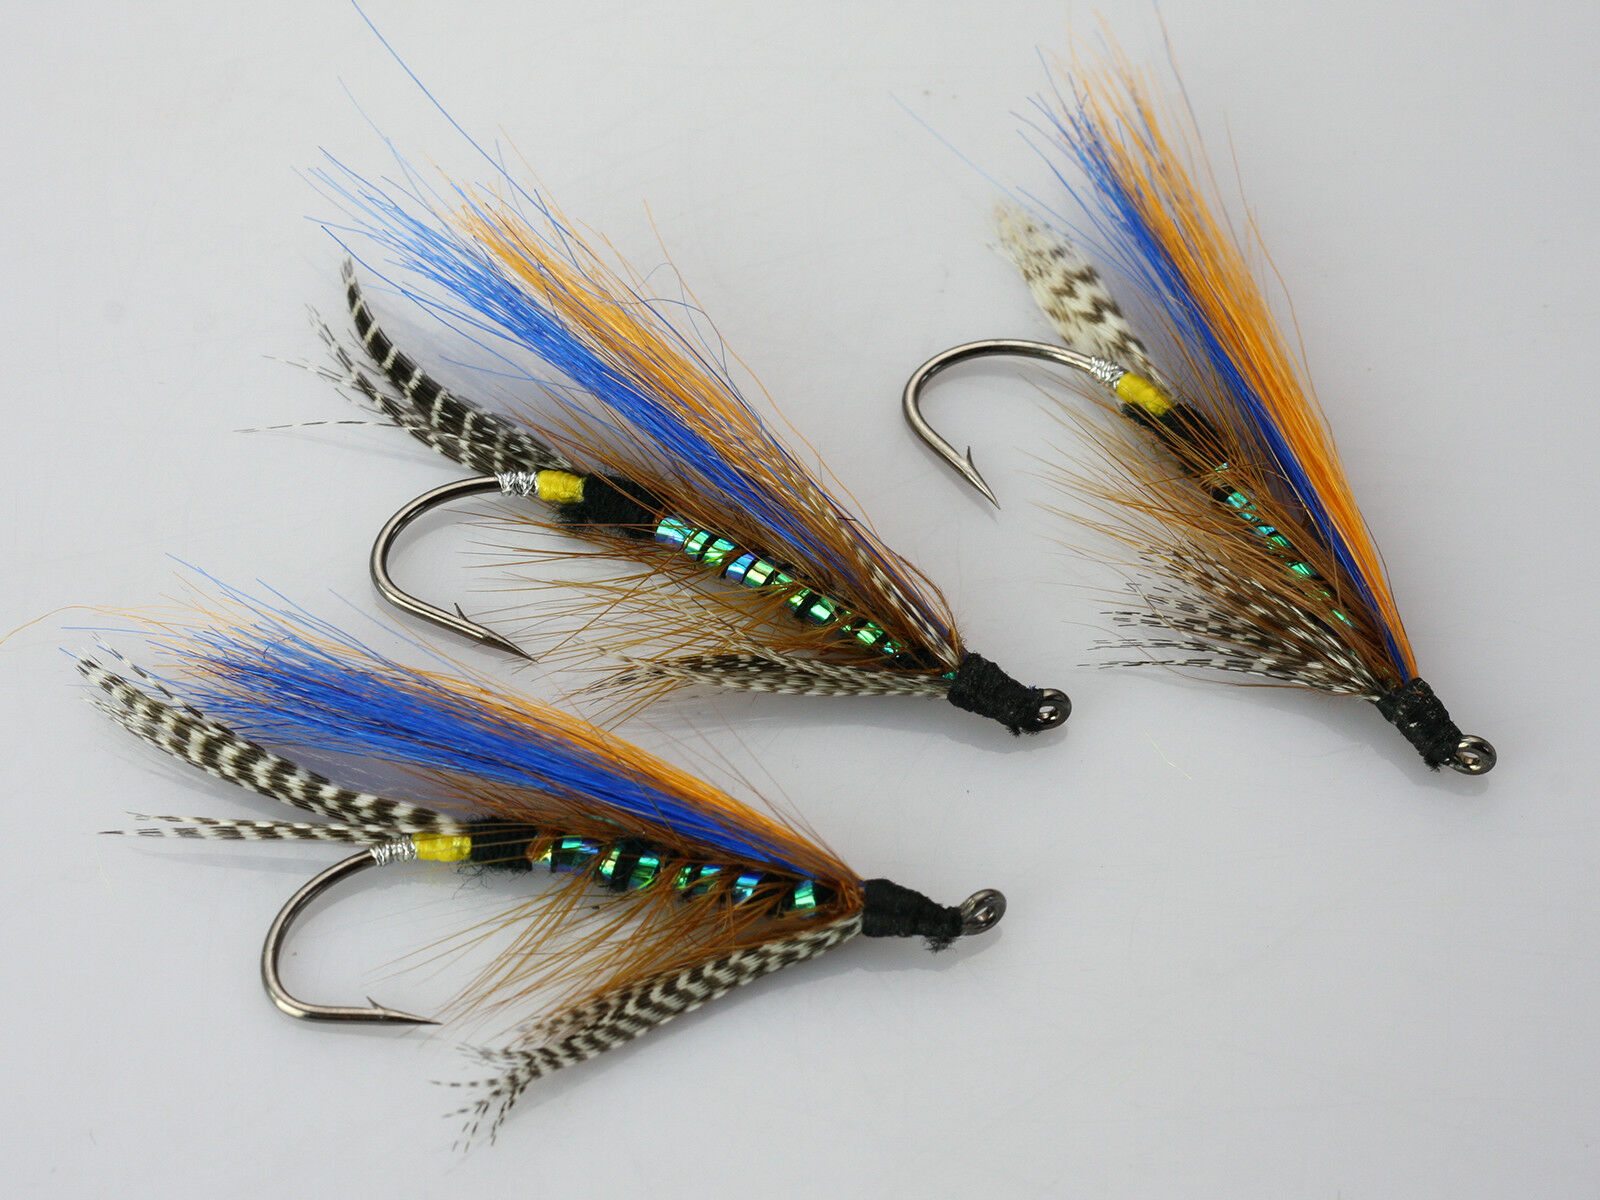 24 pcs Tube Flies Yellow Tail Black Beard Salmon And Sea Trout Fly Fishing Lures